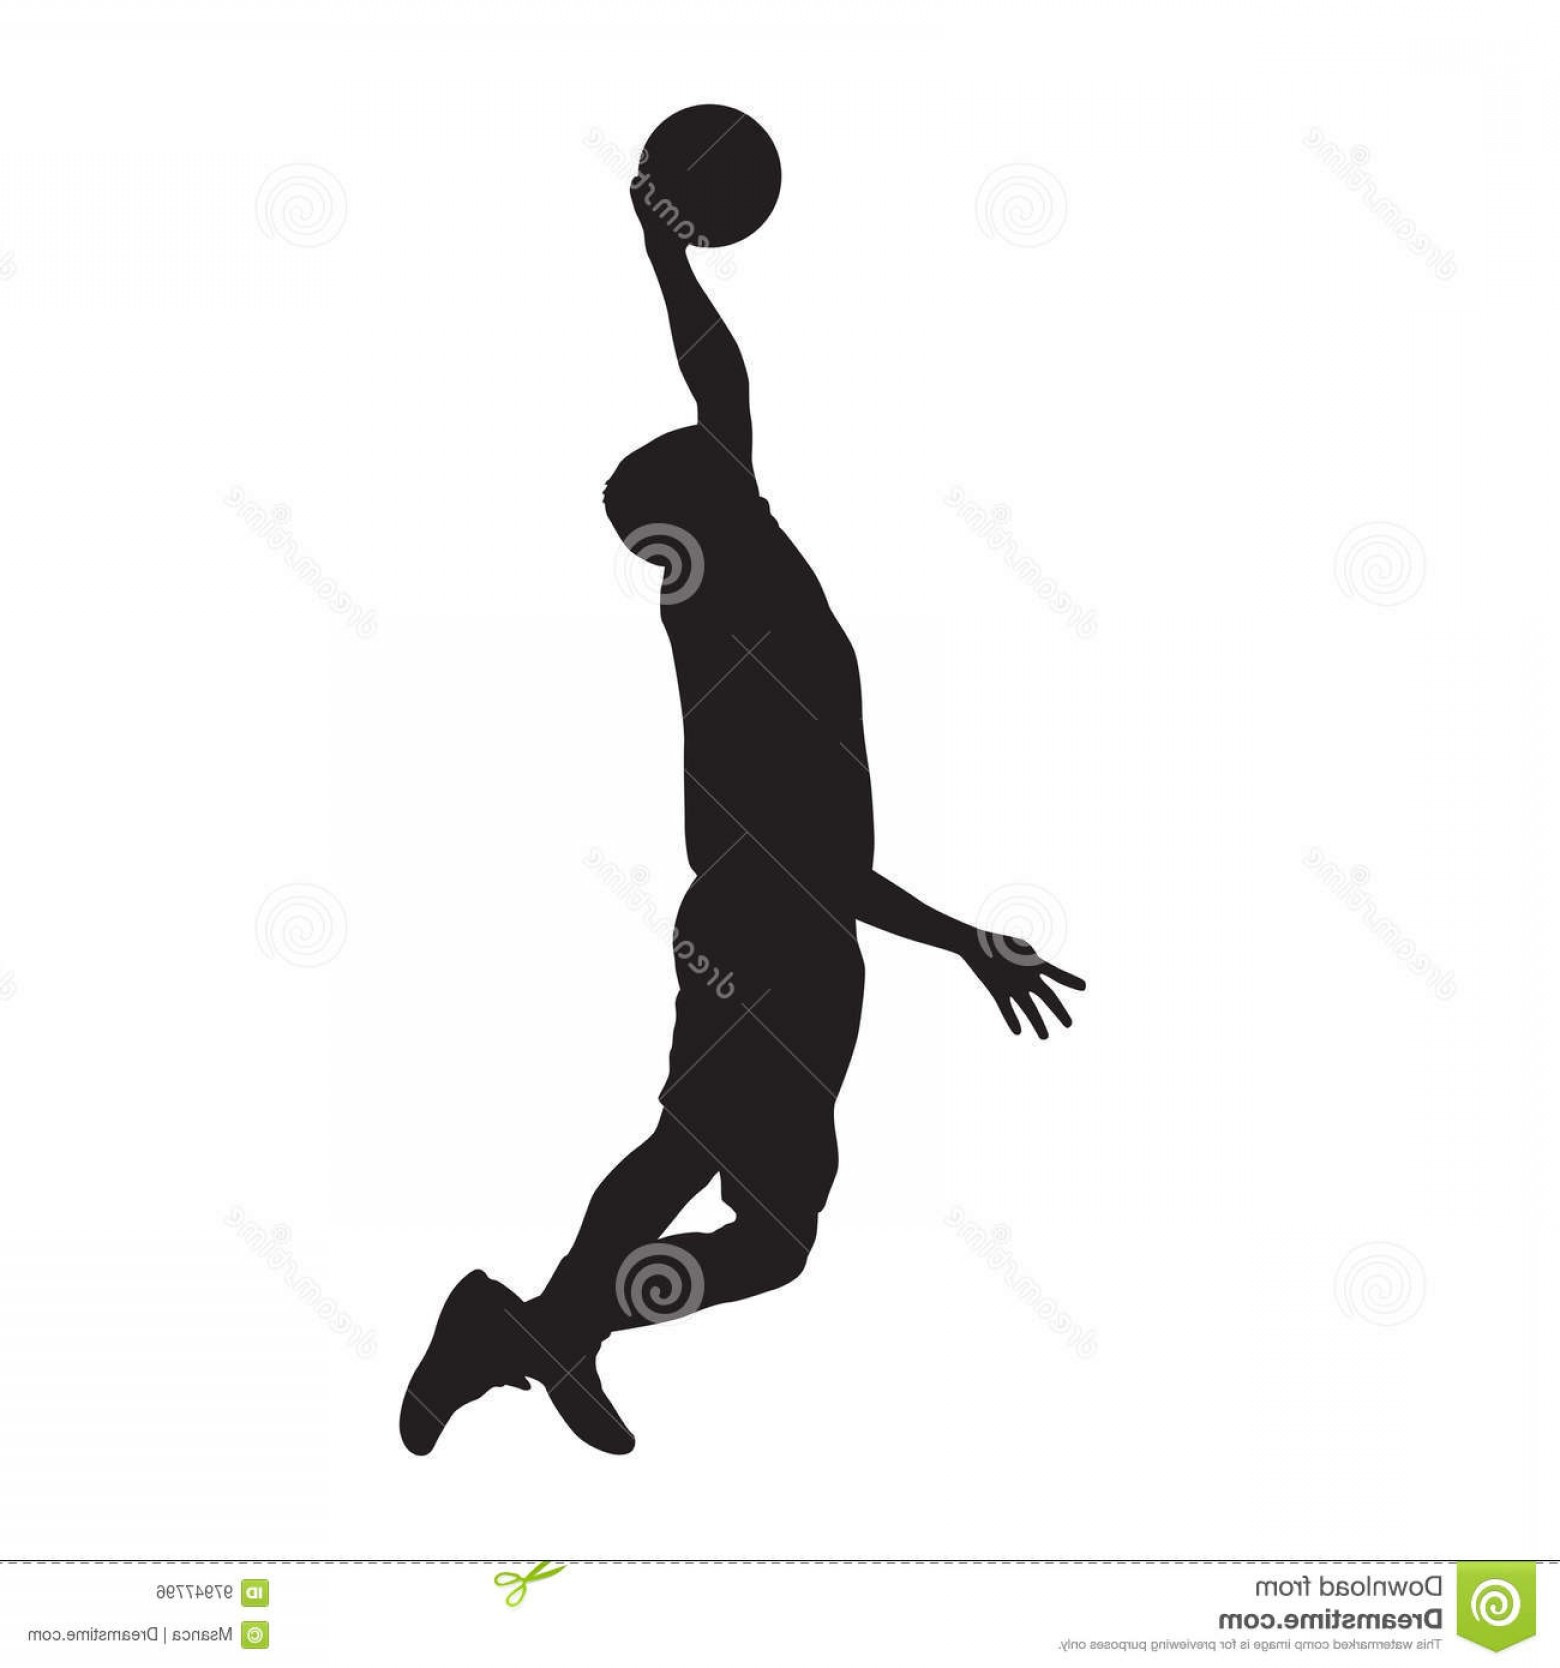 Dunking Basketball Silhouette Vector: Stock Illustration Basketball Player Dunking Vector Silhouette Isolated Image